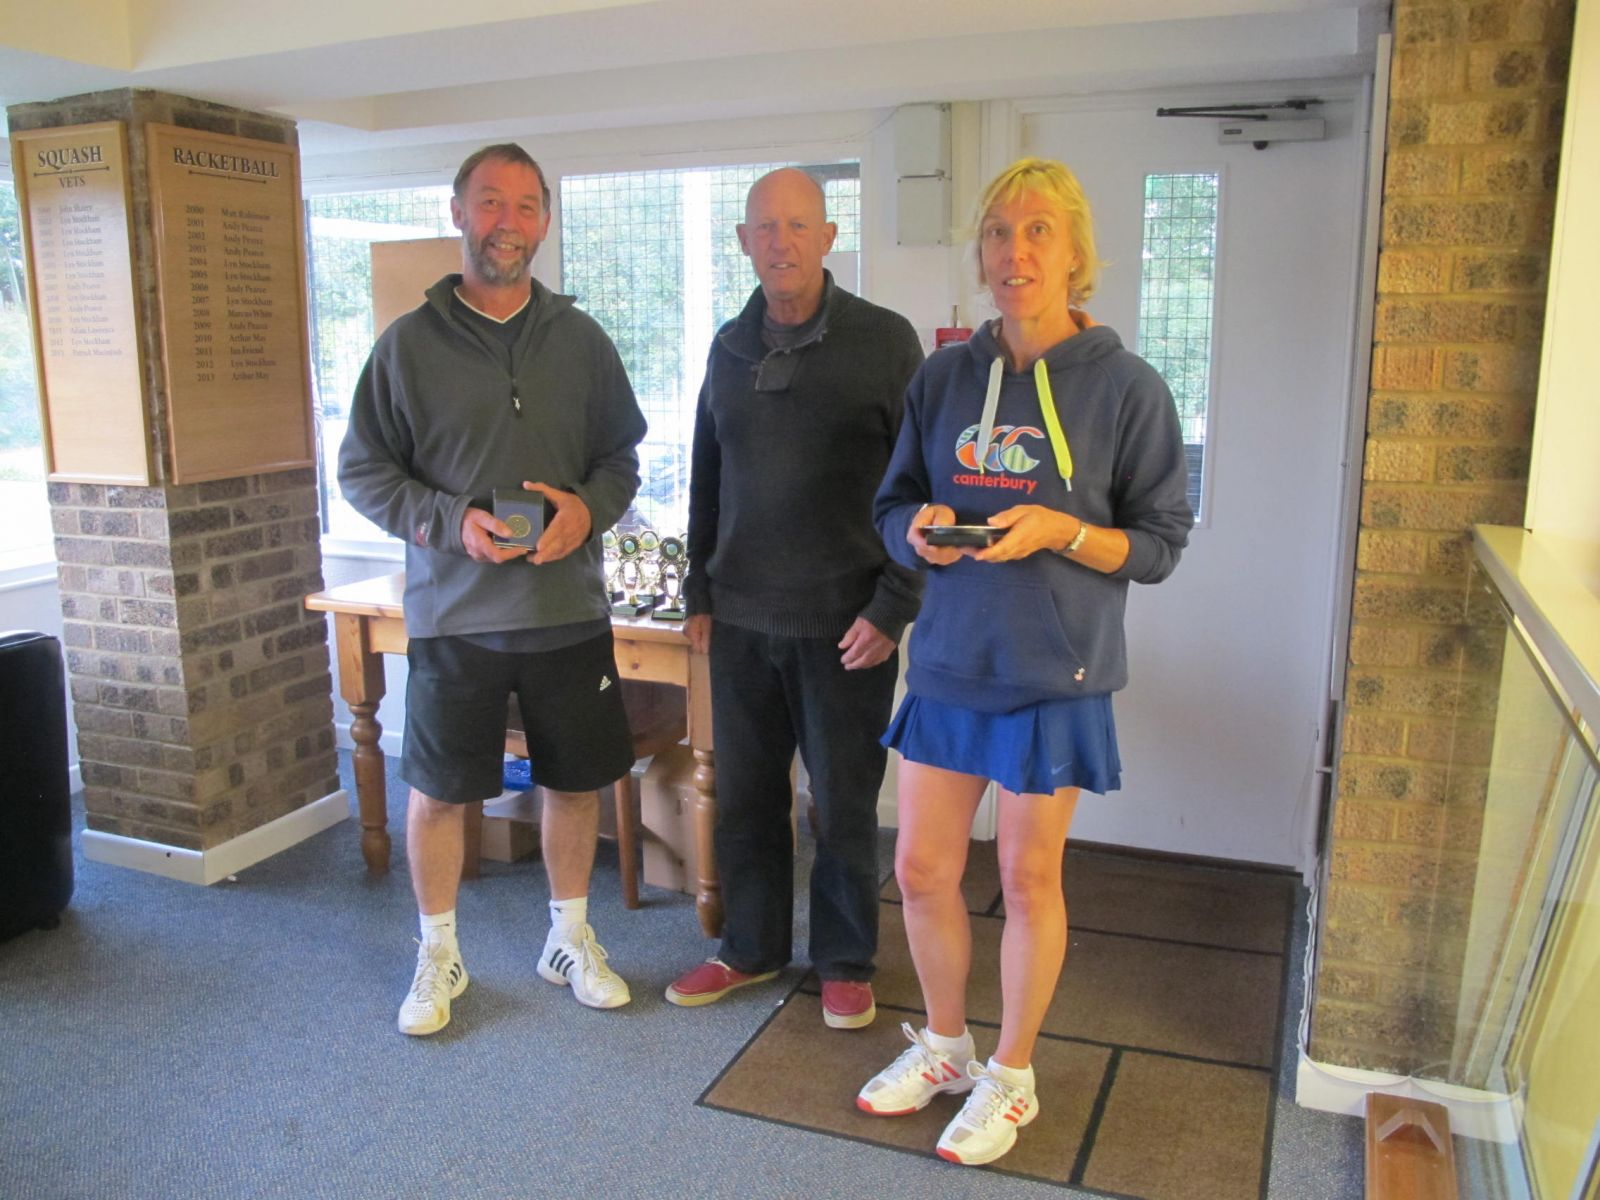 Tim Toogood & Sue Ramsbottom, Mixed Doubles runners-up with Mike Henderson